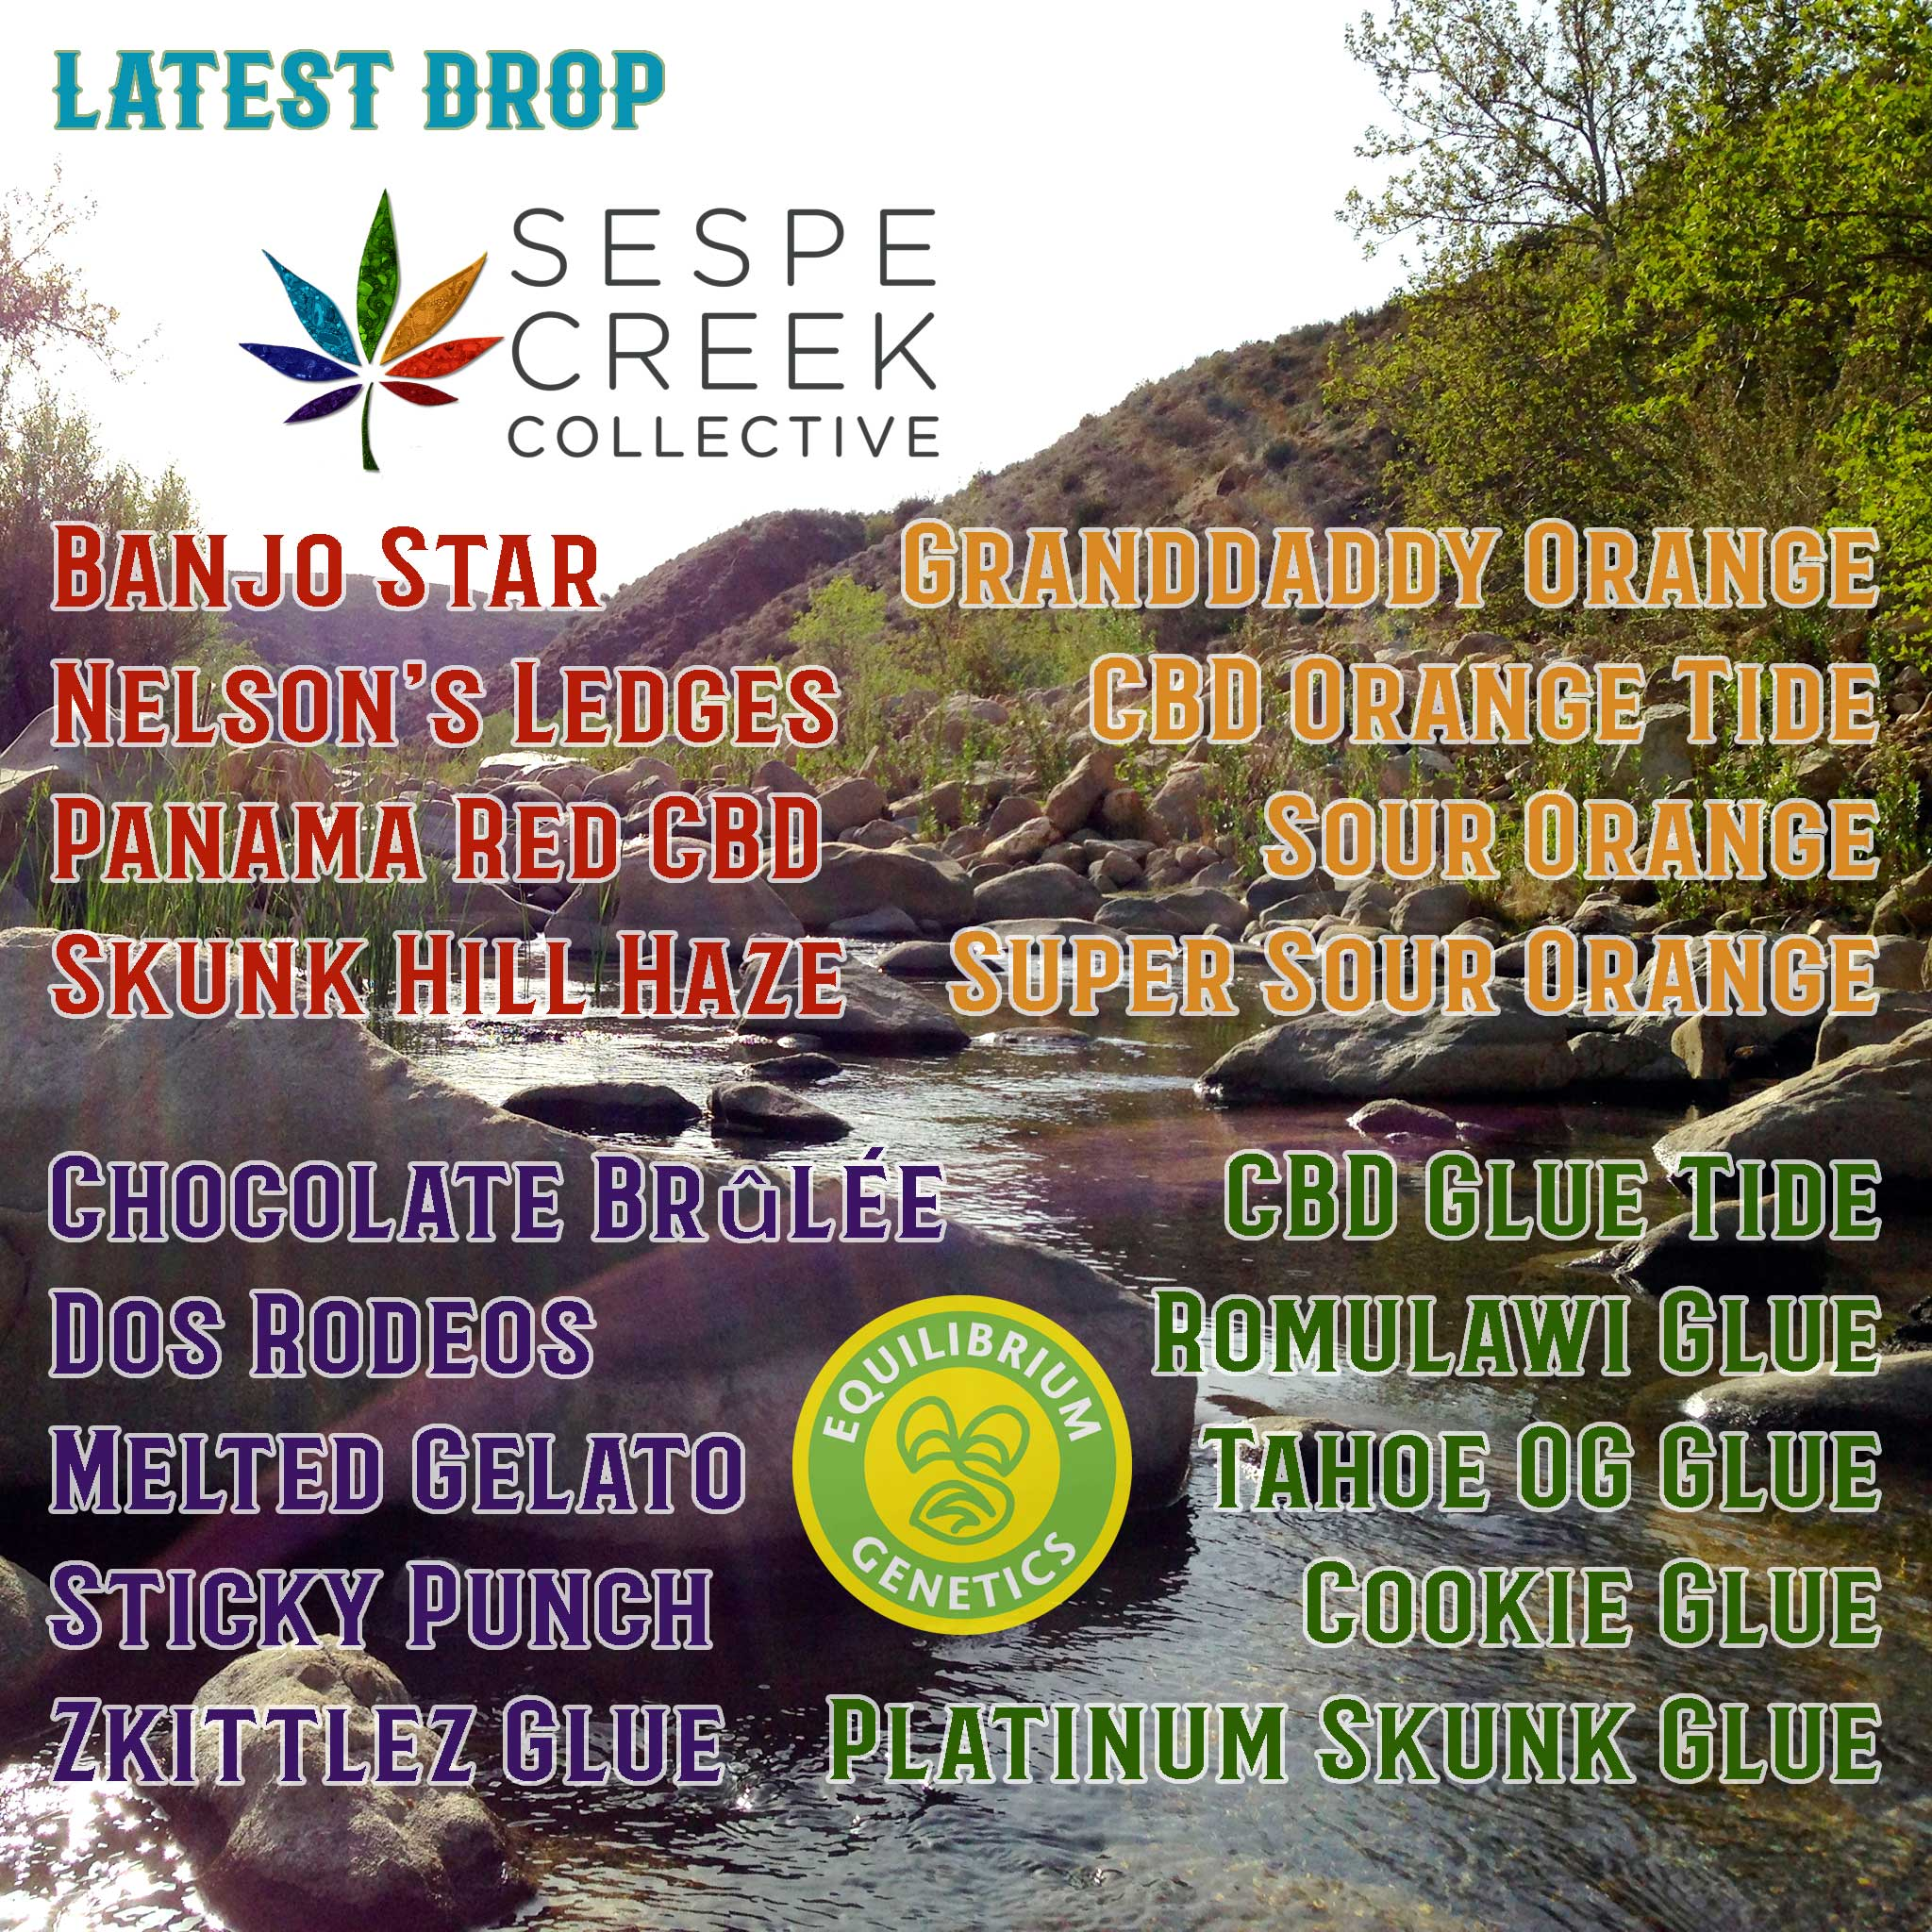 Latest Drop: Sespe Creek Collective